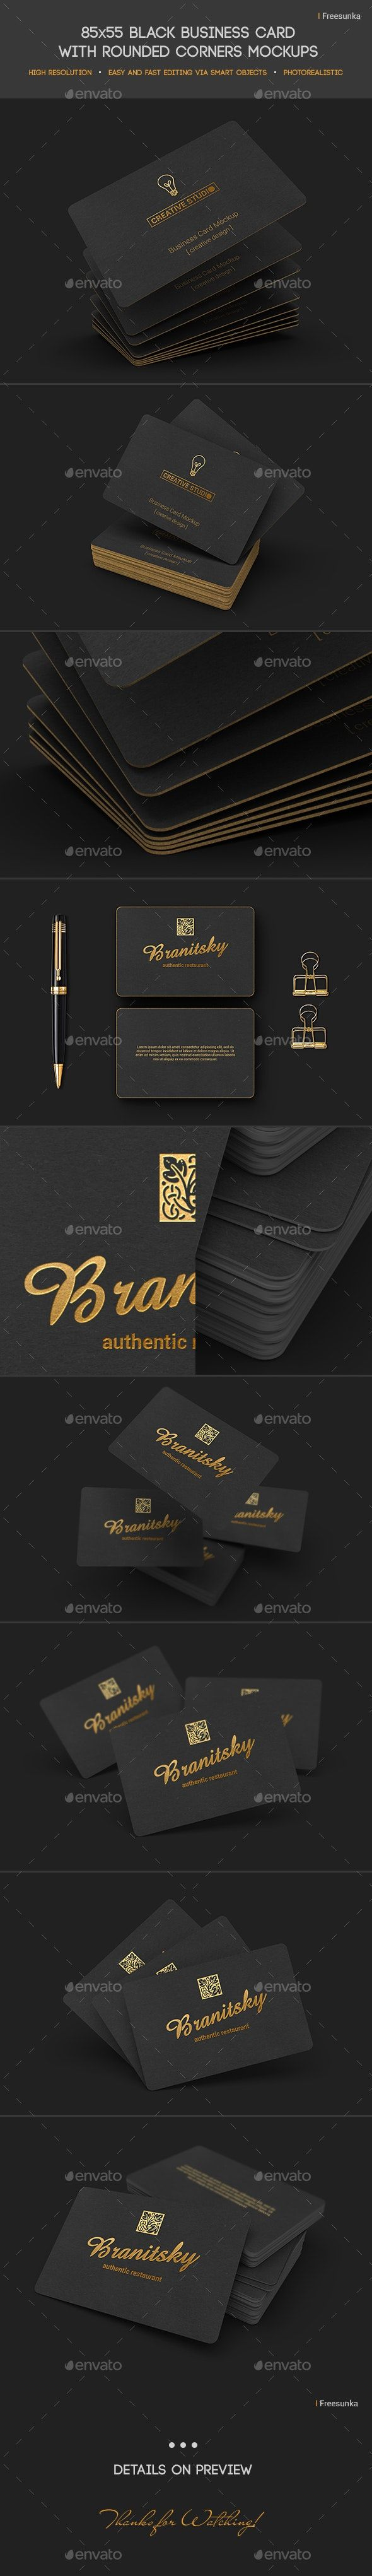 85x55 Black Business Card Mockups Business Card Mock Up Black Business Card Mockup Black Business Card